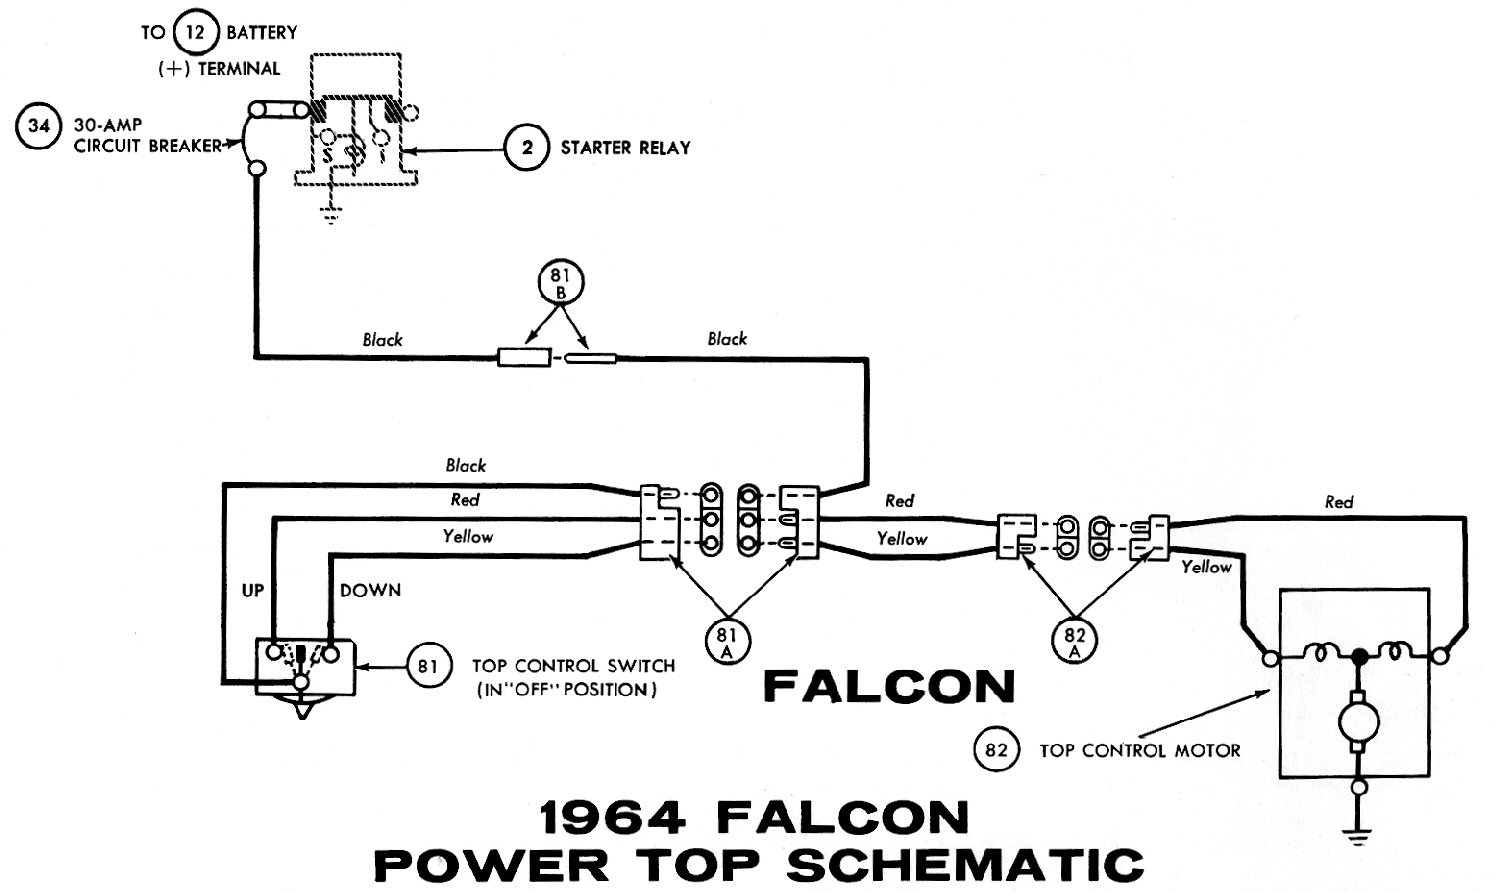 1964o 1964 mustang wiring diagrams average joe restoration 1964 falcon wiring diagram at nearapp.co